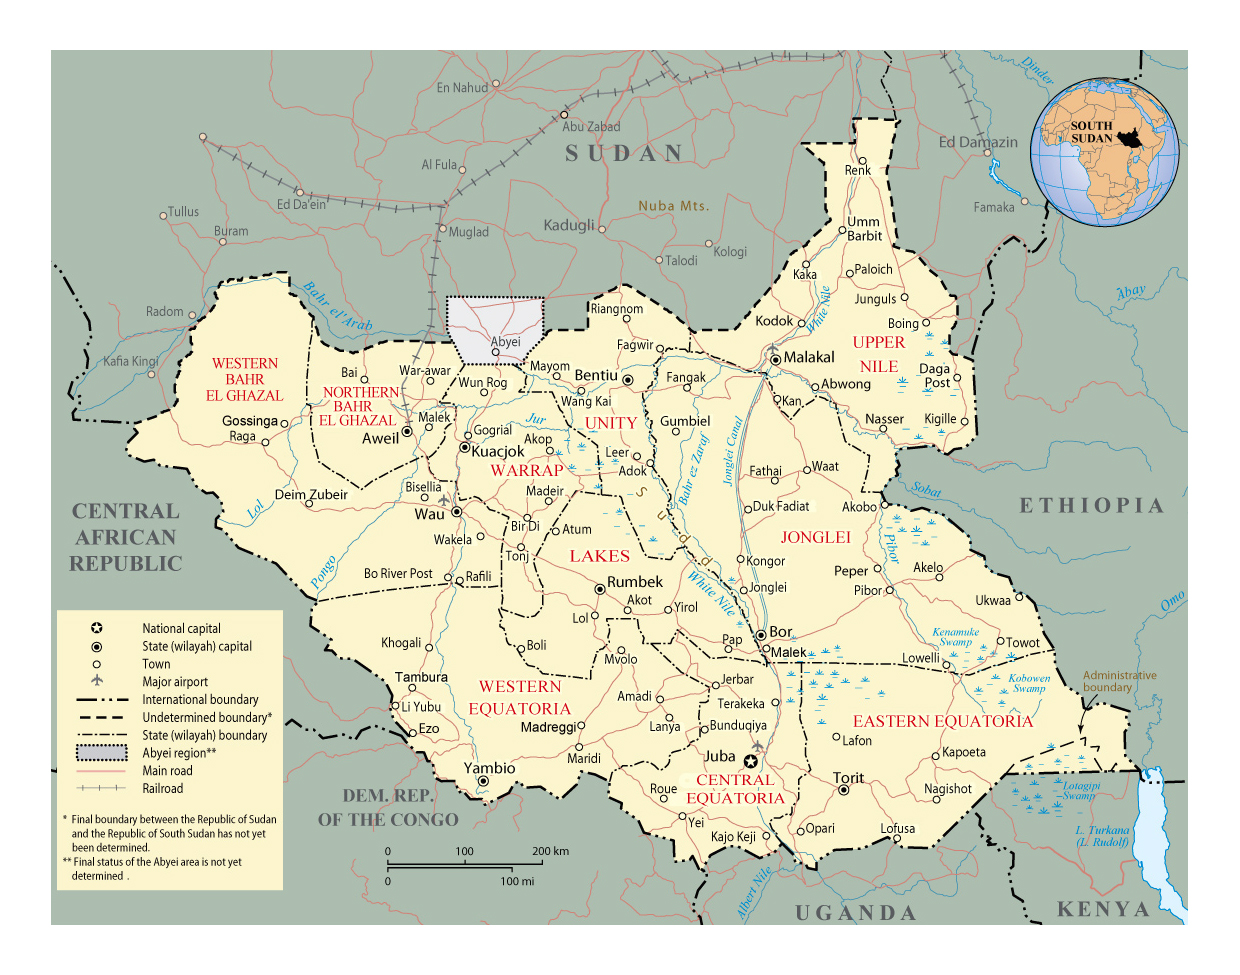 Detailed political and administrative map of South Sudan with roads